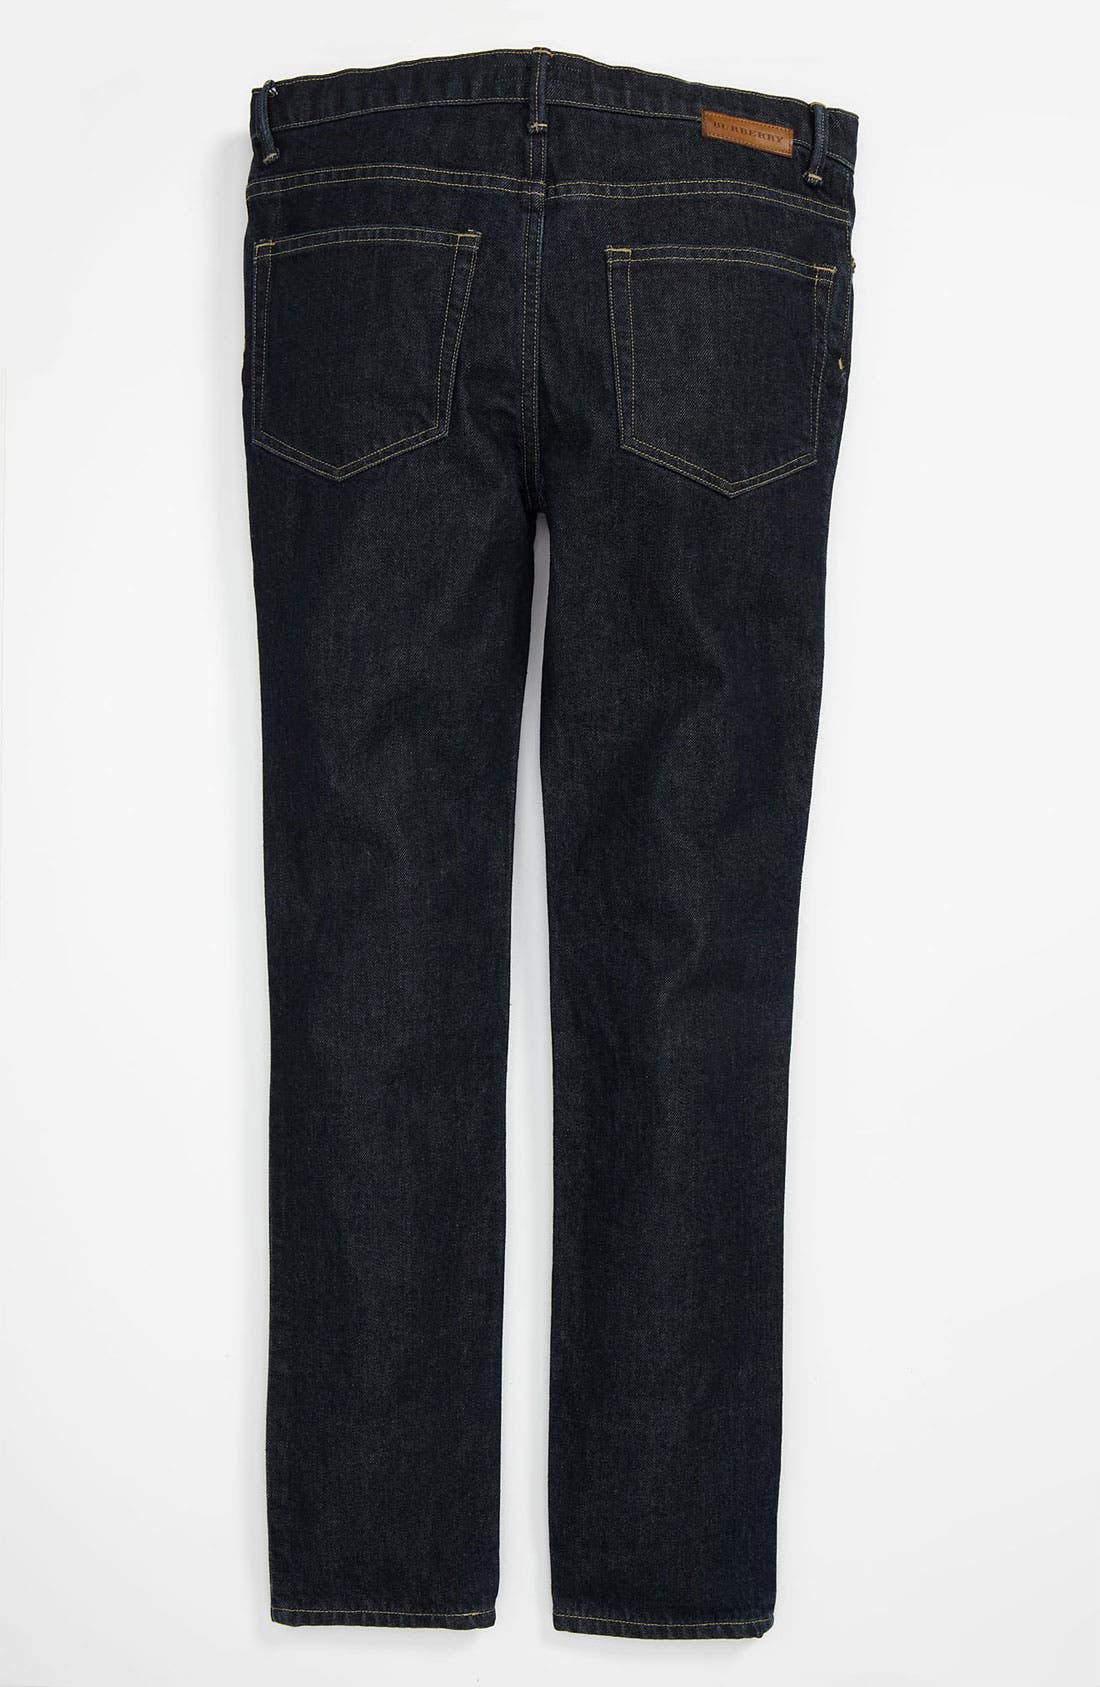 Alternate Image 1 Selected - Burberry Skinny Leg Jeans (Little Boys & Big Boys)